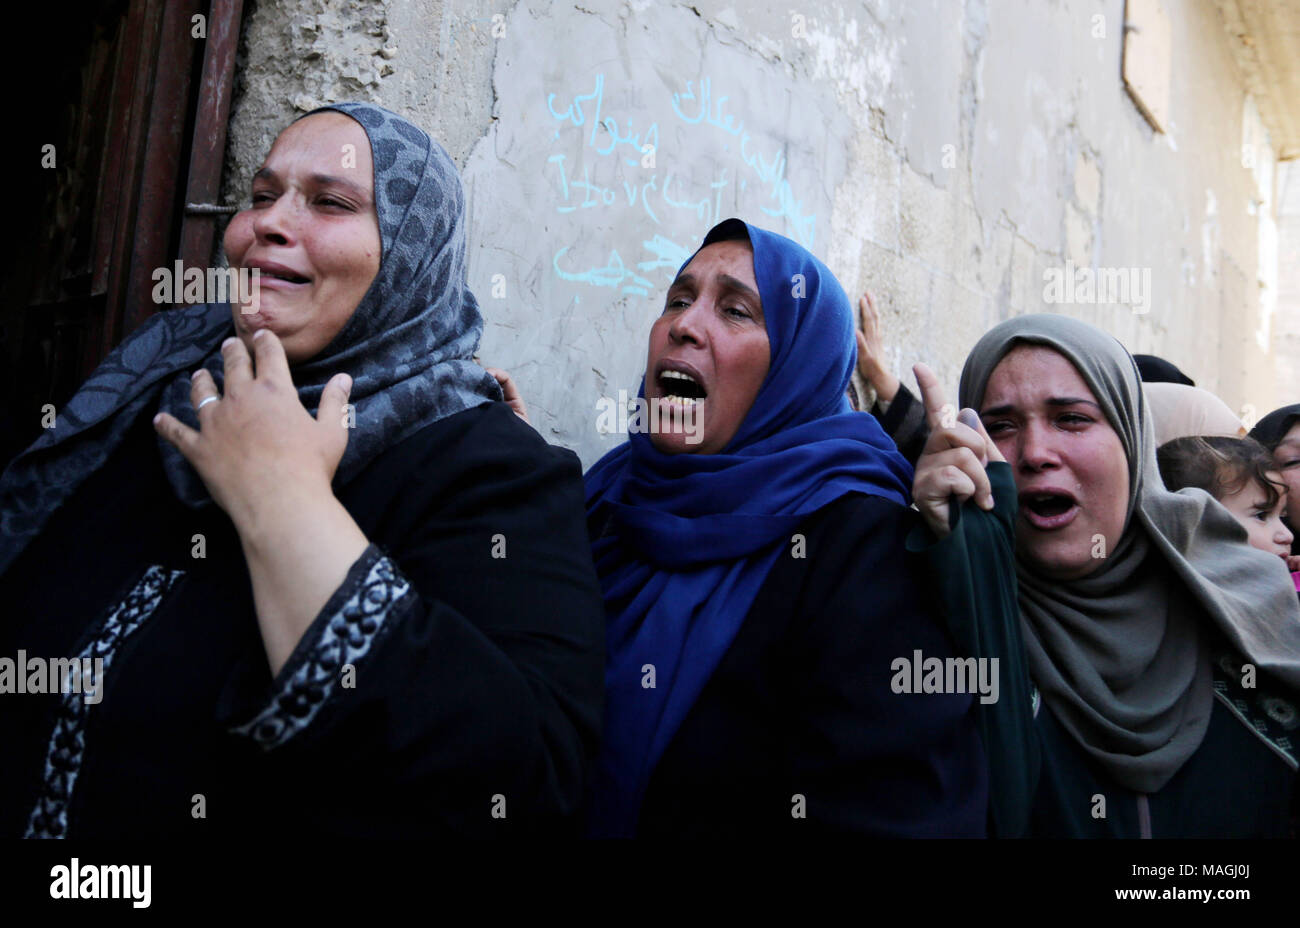 Most Inspiring Gaza Eid Al-Fitr 2018 - khan-yunis-gaza-strip-palestinian-territory-2nd-apr-2018-palestinian-women-mourn-during-the-funeral-of-faris-al-raqib-who-died-from-his-injuries-after-being-shot-in-the-stomach-by-israeli-forces-a-few-days-earlier-in-khan-yunis-in-the-southern-gaza-strip-on-april-2-2018-raqib-succumbed-to-his-wounds-three-days-after-being-shot-by-israeli-forces-when-a-mass-protest-led-to-clashes-gazas-health-ministry-said-raising-the-death-toll-credit-ashraf-amraapa-imageszuma-wirealamy-live-news-MAGJ0J  Image_366429 .jpg